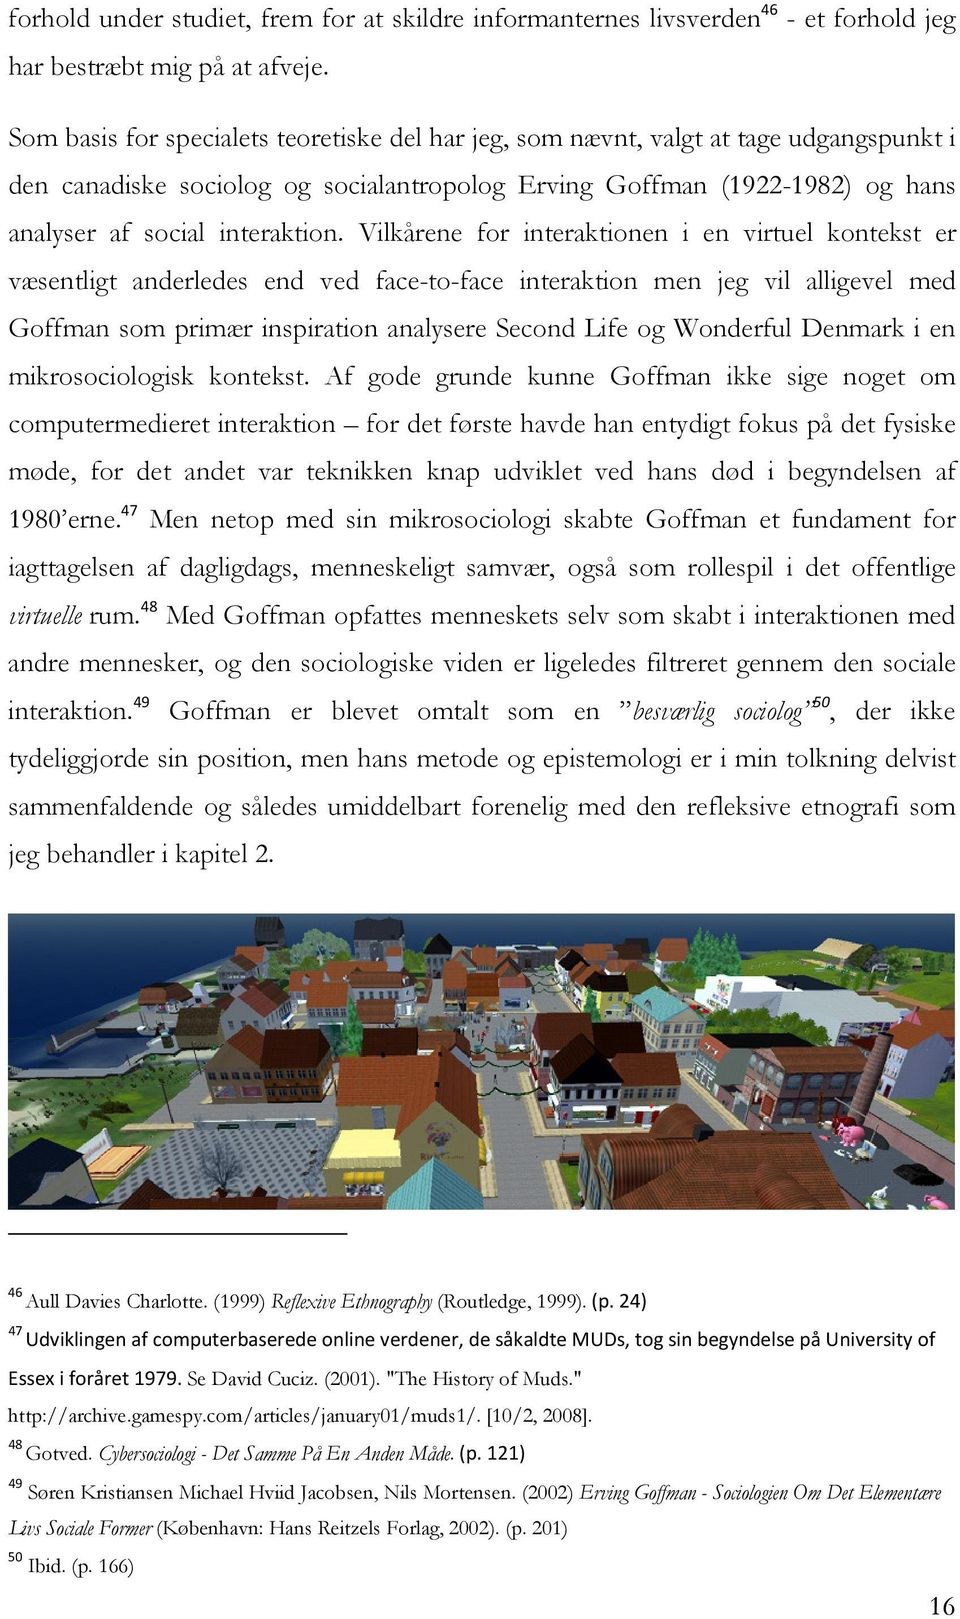 Vilkårene for interaktionen i en virtuel kontekst er væsentligt anderledes end ved face-to-face interaktion men jeg vil alligevel med Goffman som primær inspiration analysere Second Life og Wonderful